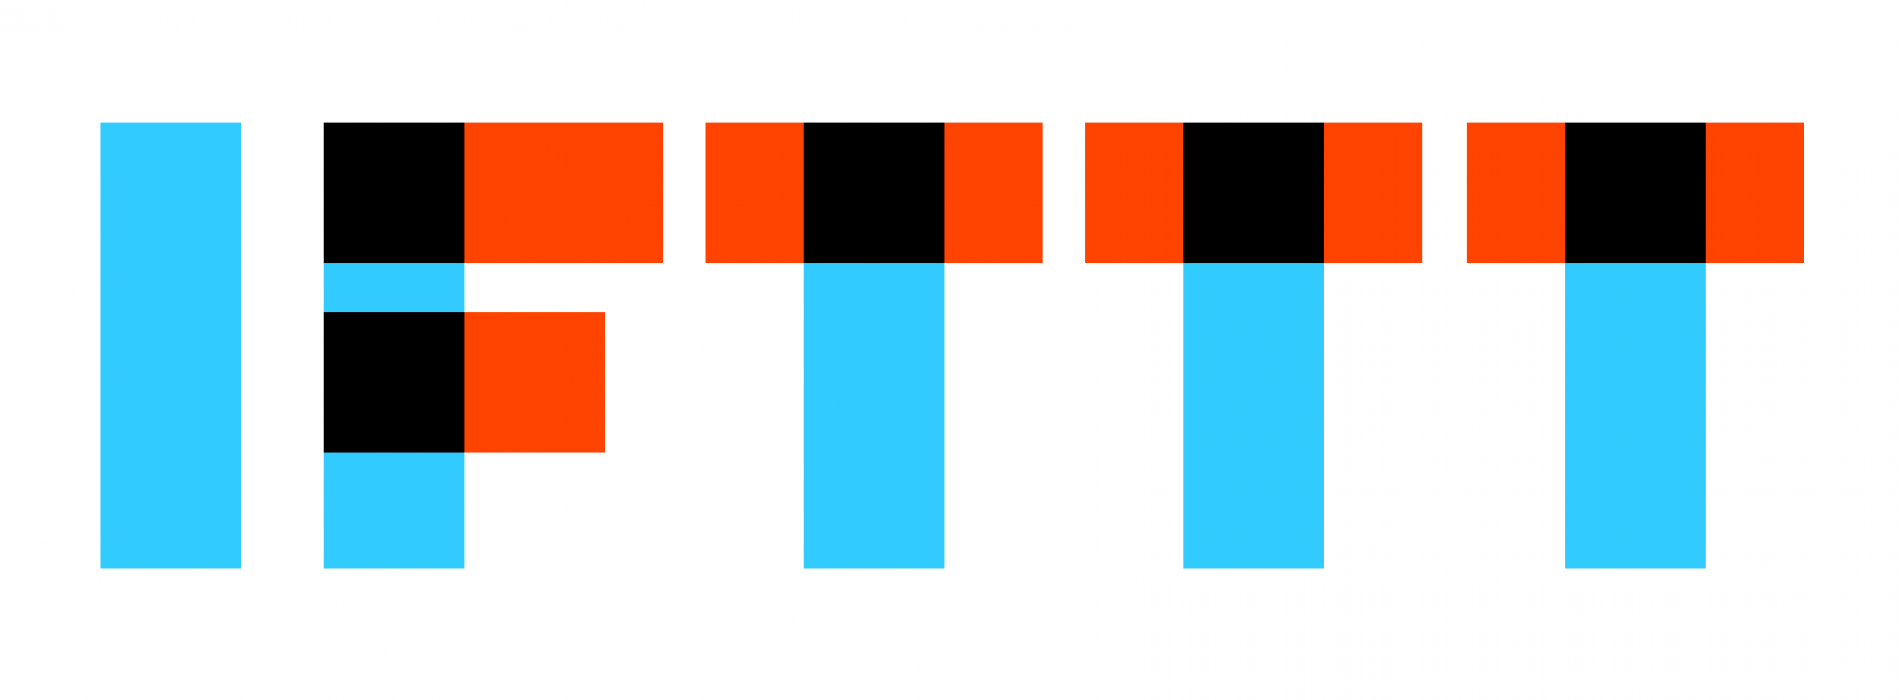 IFTTT.com readies its Android app for public consumption